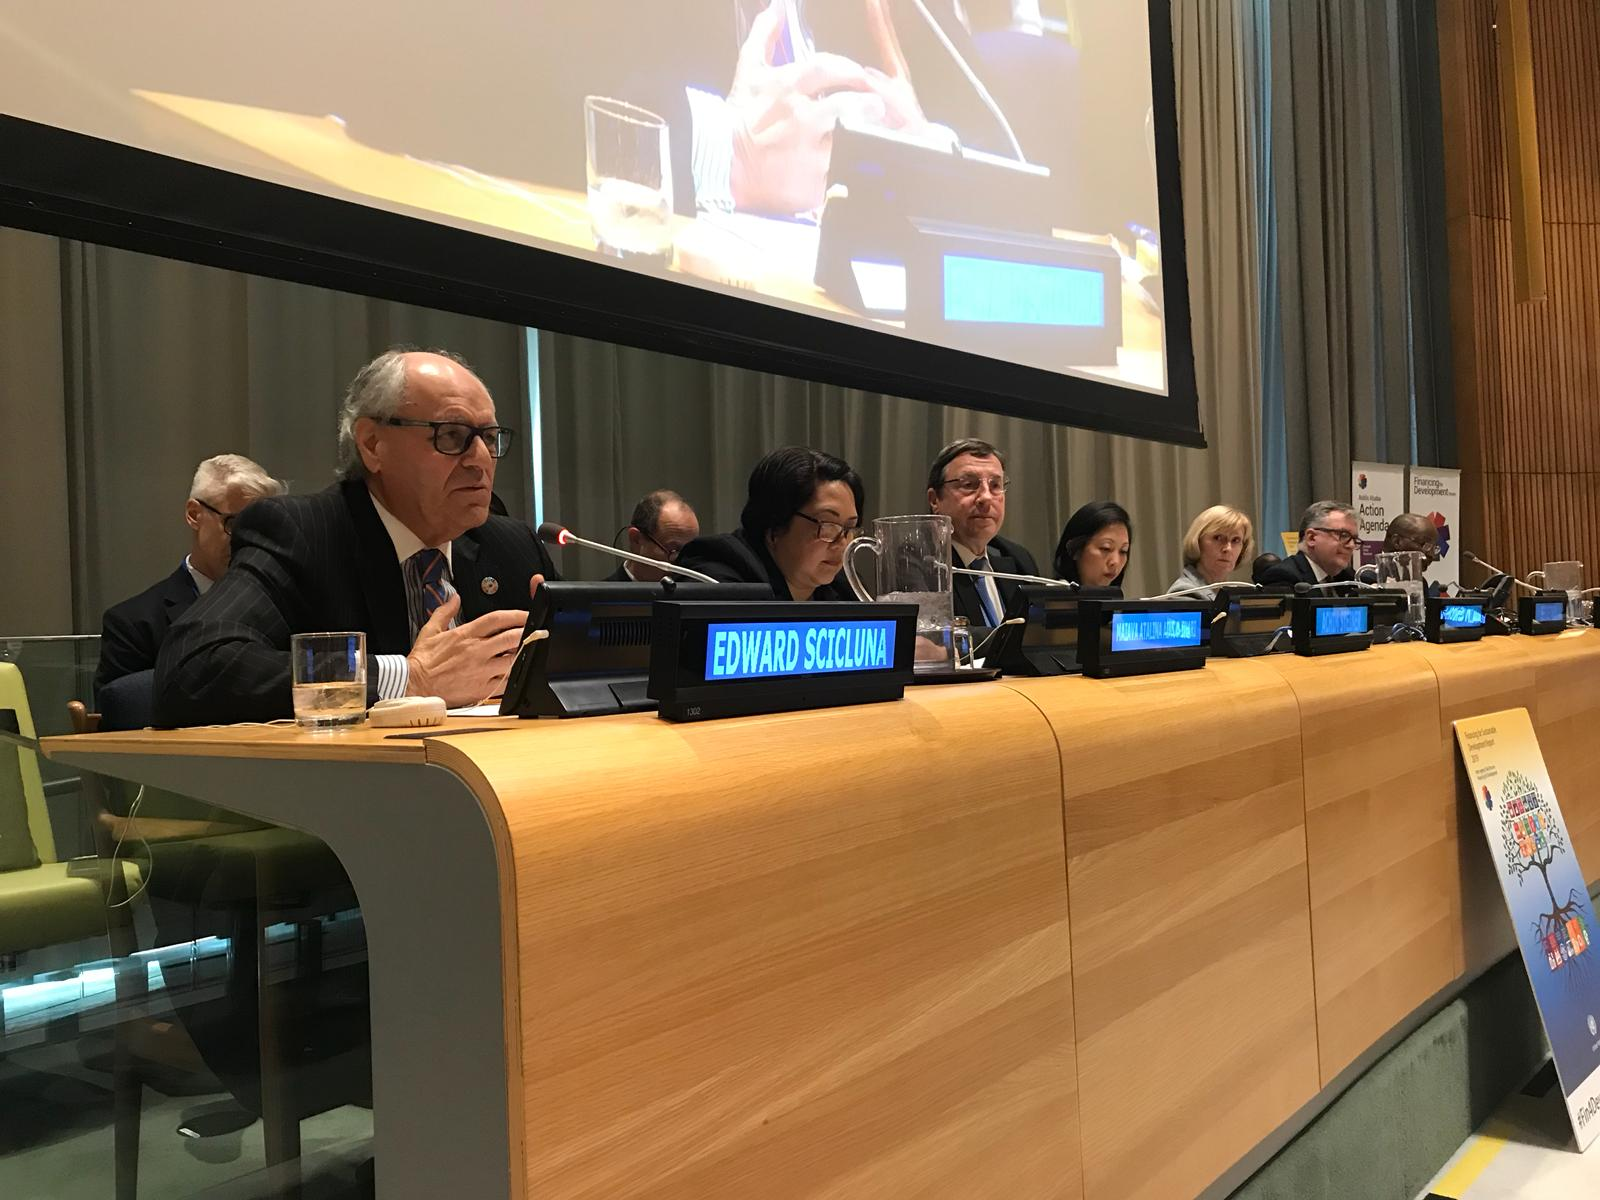 PRESS RELEASE BY THE MINISTRY FOR FINANCE Minister Scicluna addresses the UN Forum on Financing for Development